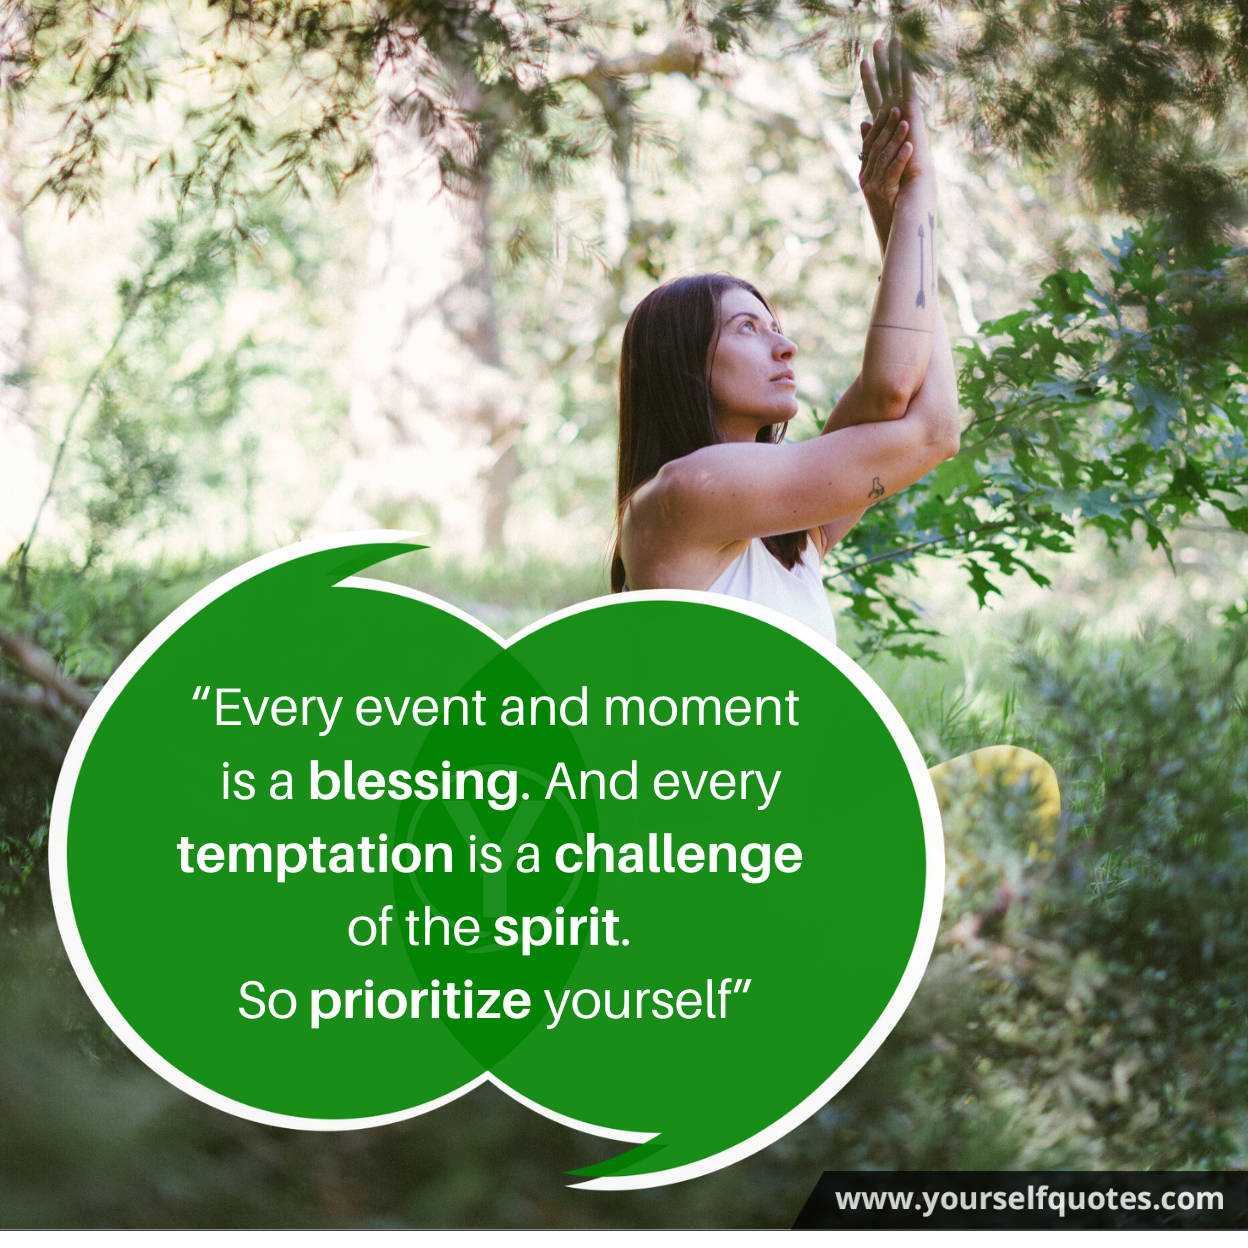 Quotes on Spirituality Images